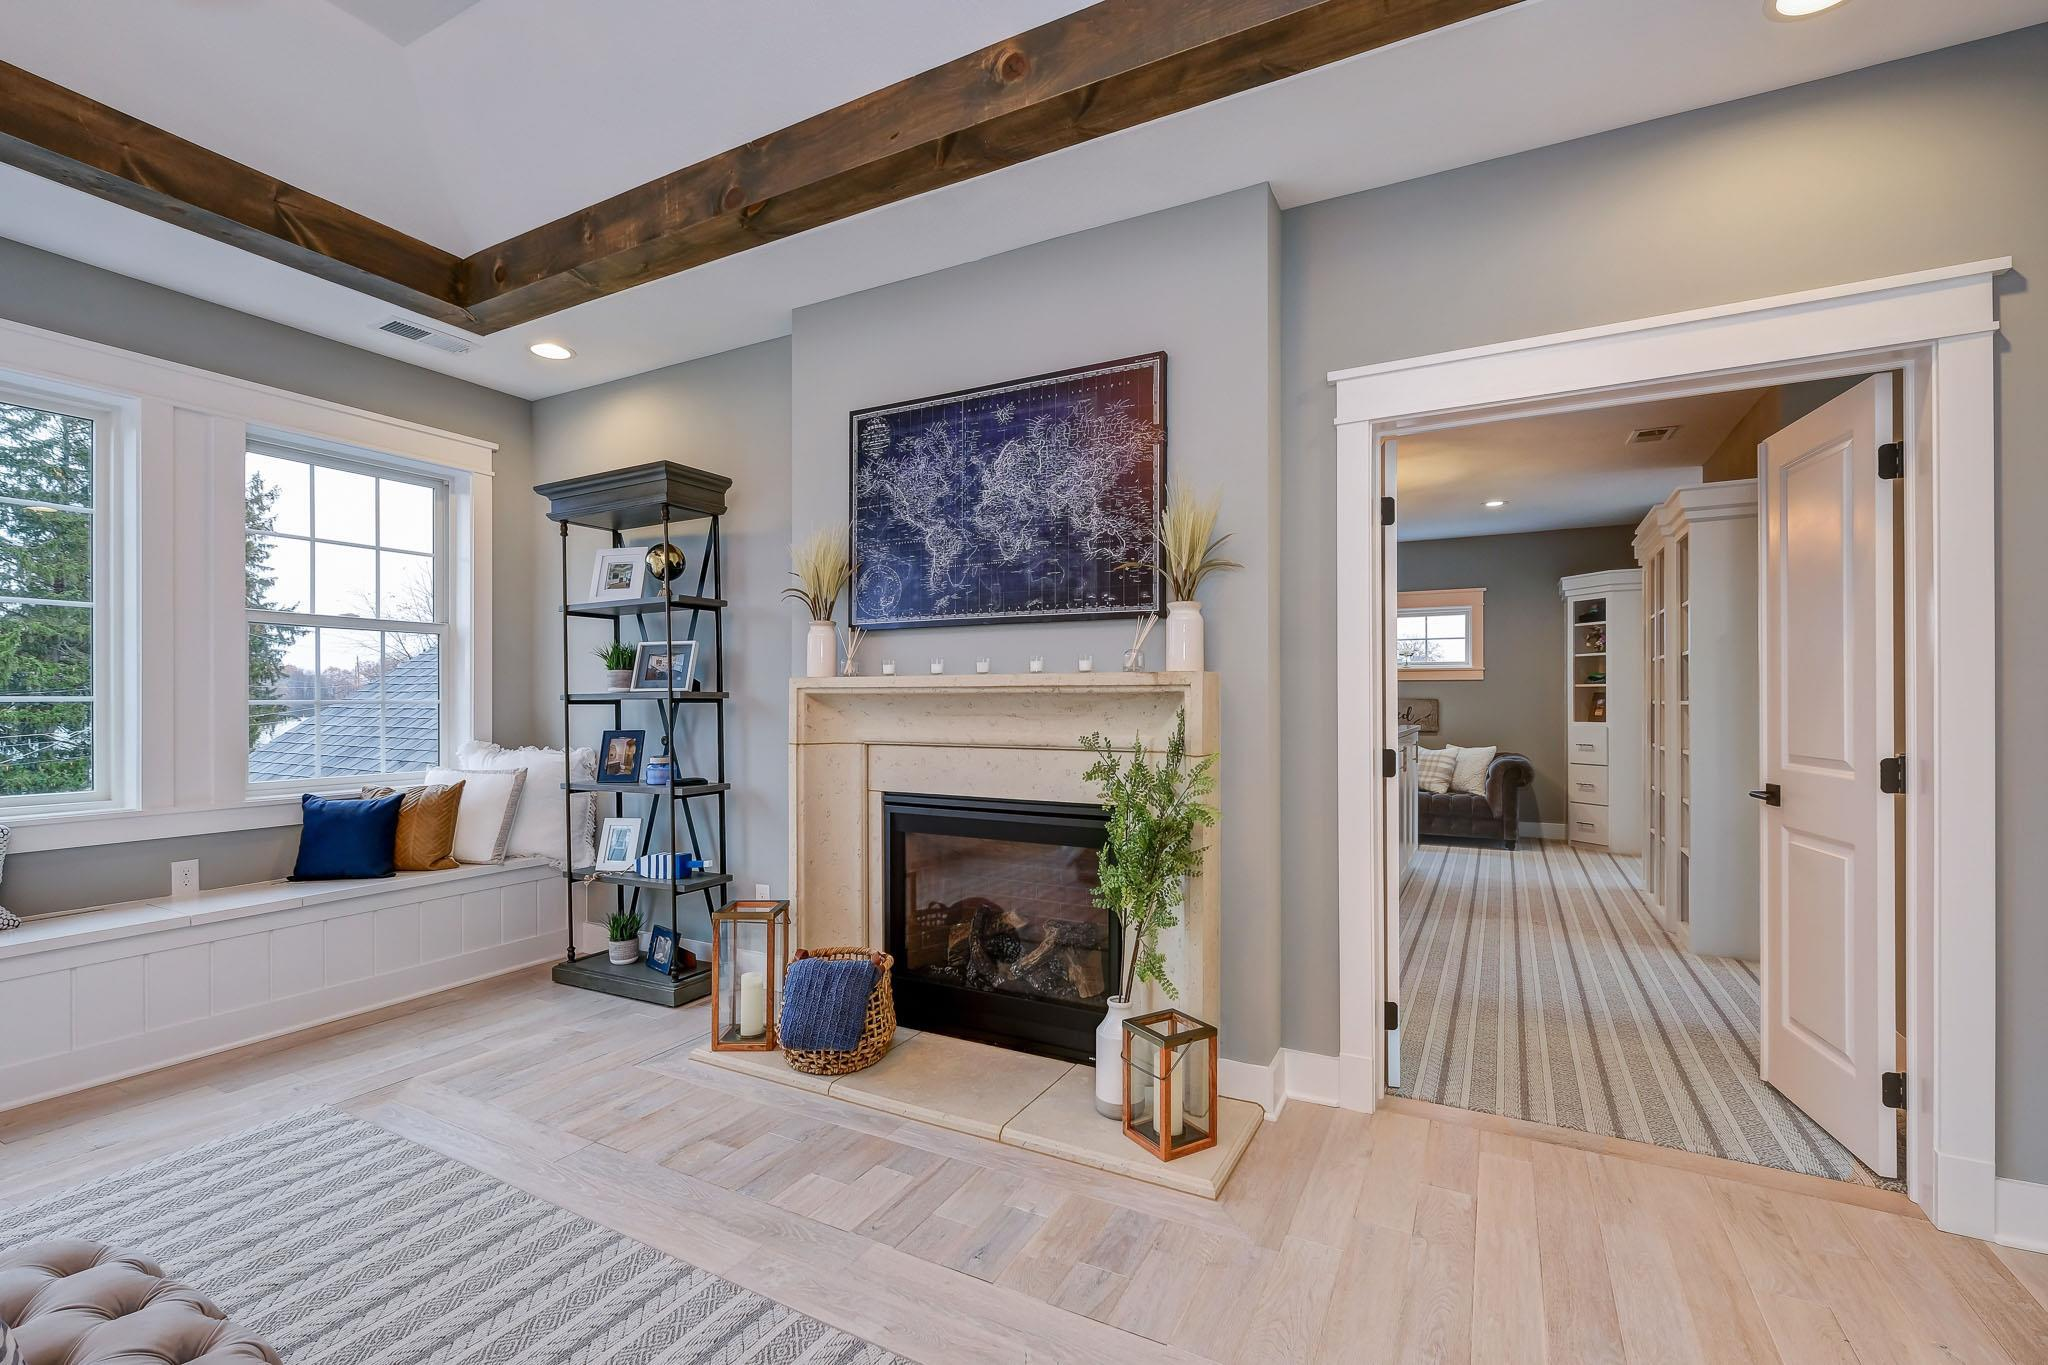 Living Area featured in the Portland By Infinity Custom Homes in Pittsburgh, PA